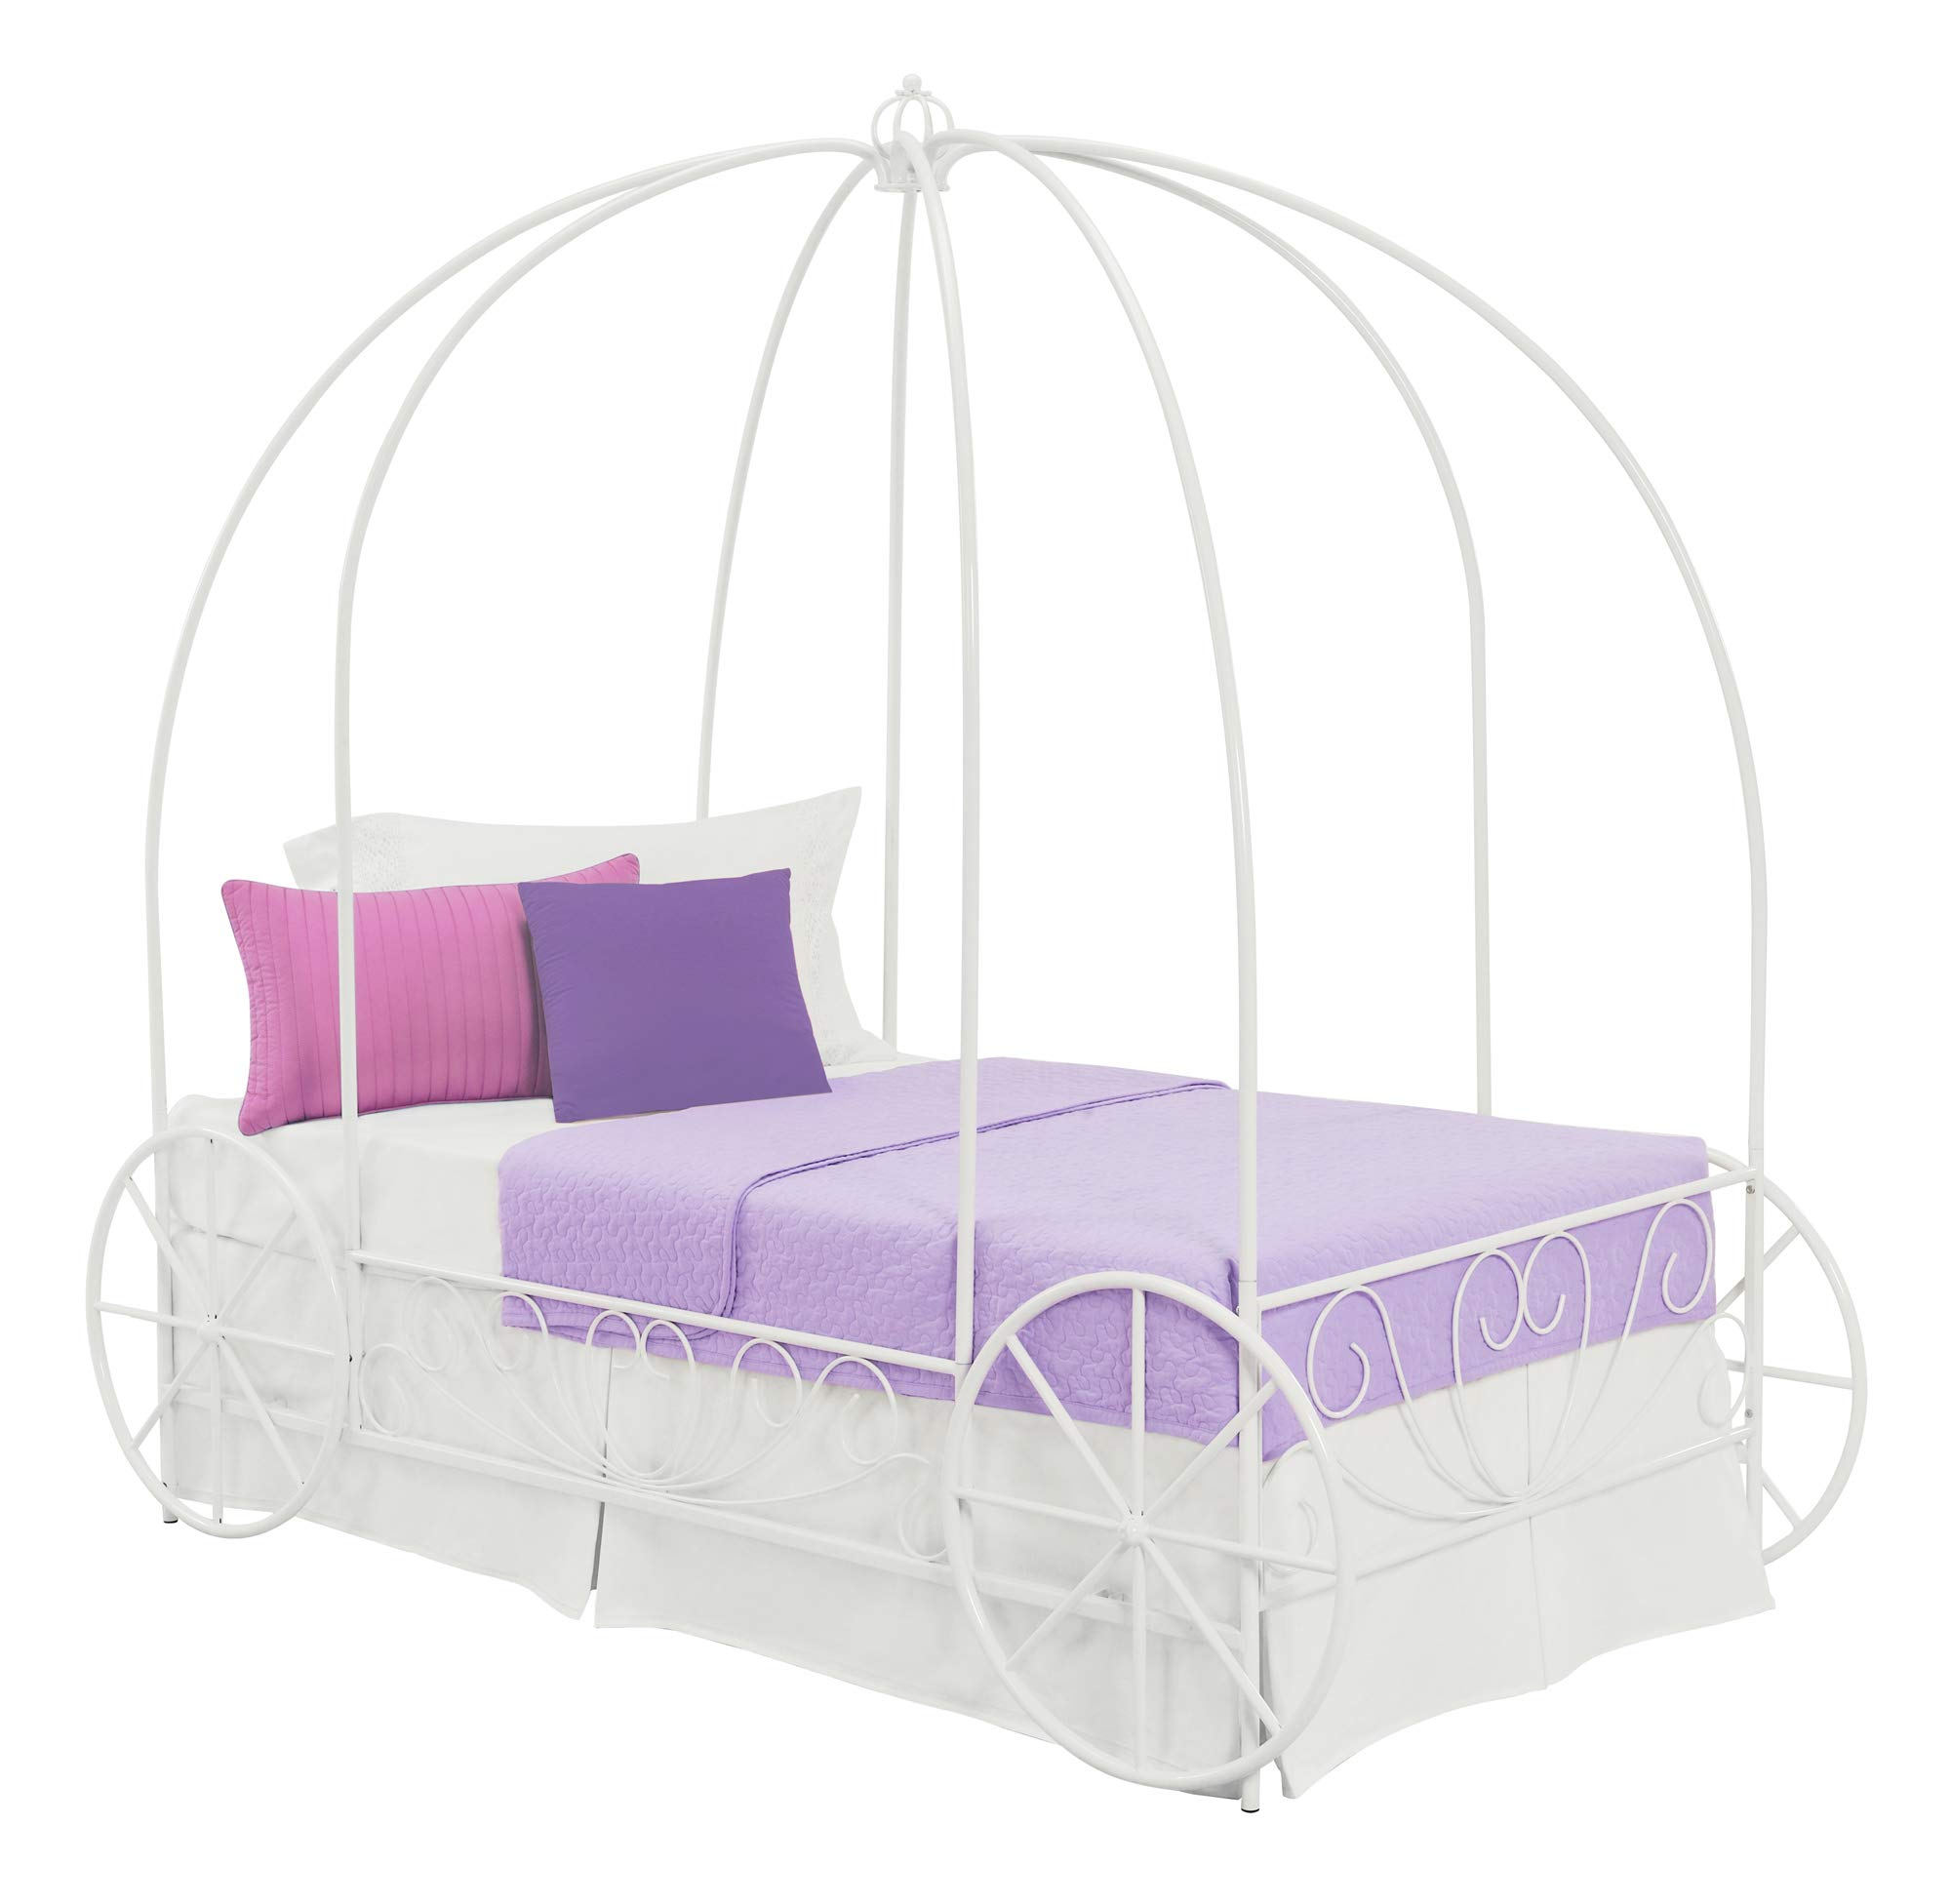 DHP Metal Carriage Bed, Fairy Tale Bed Frame, Shabby-Chic Style, Twin, White by DHP